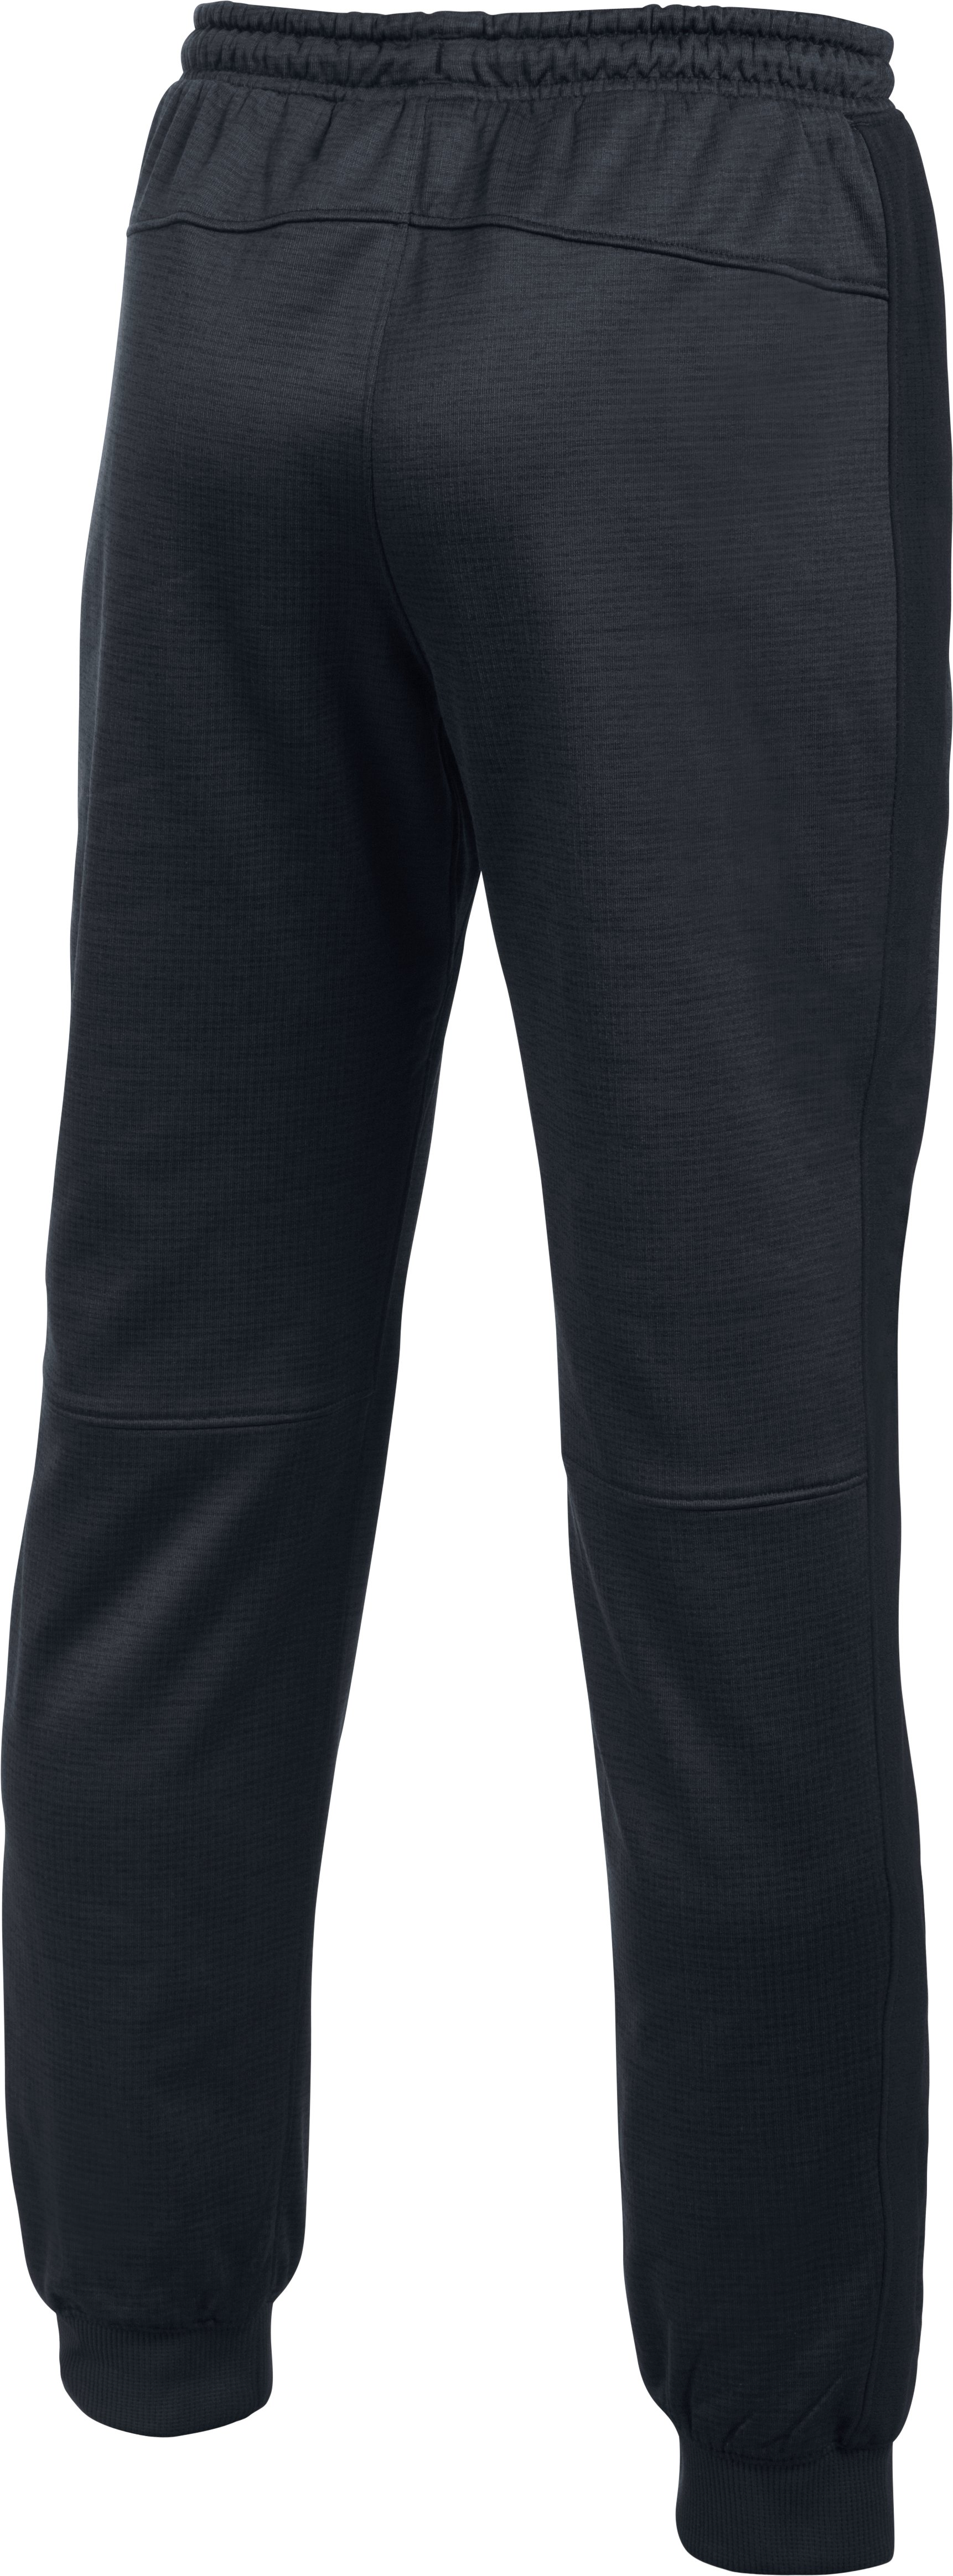 Boys' ColdGear® Reactor Pants, ANTHRACITE, undefined